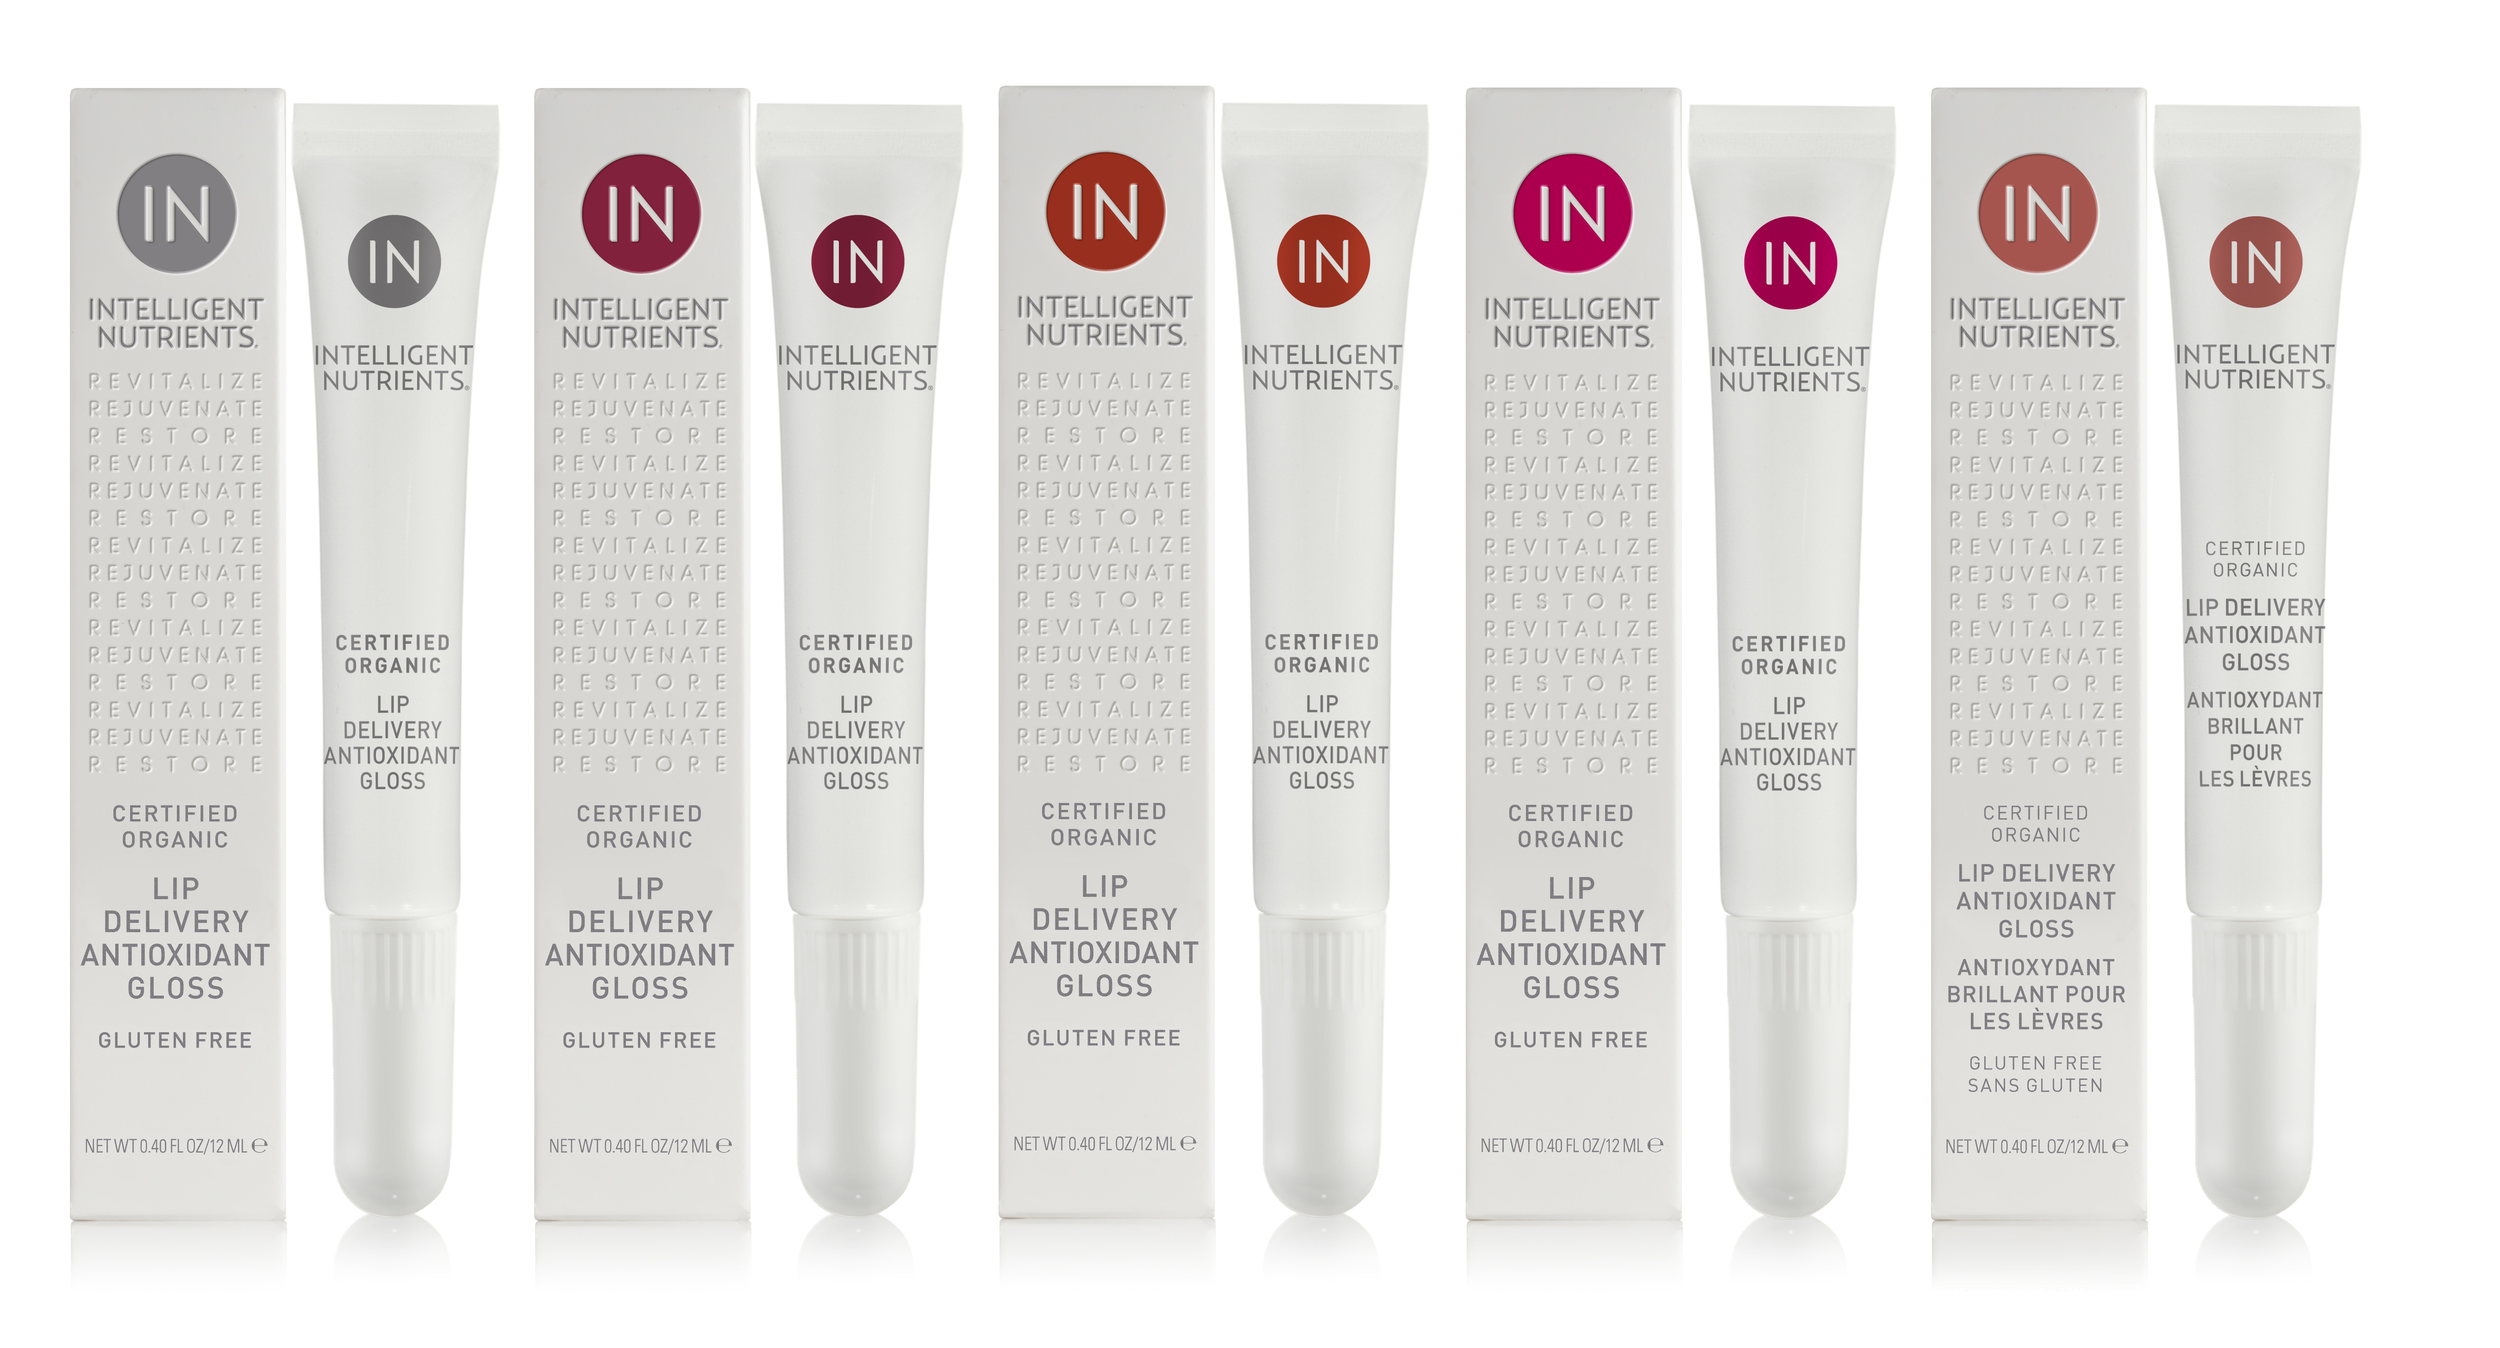 Lip Delivery Antioxidant Gloss Series